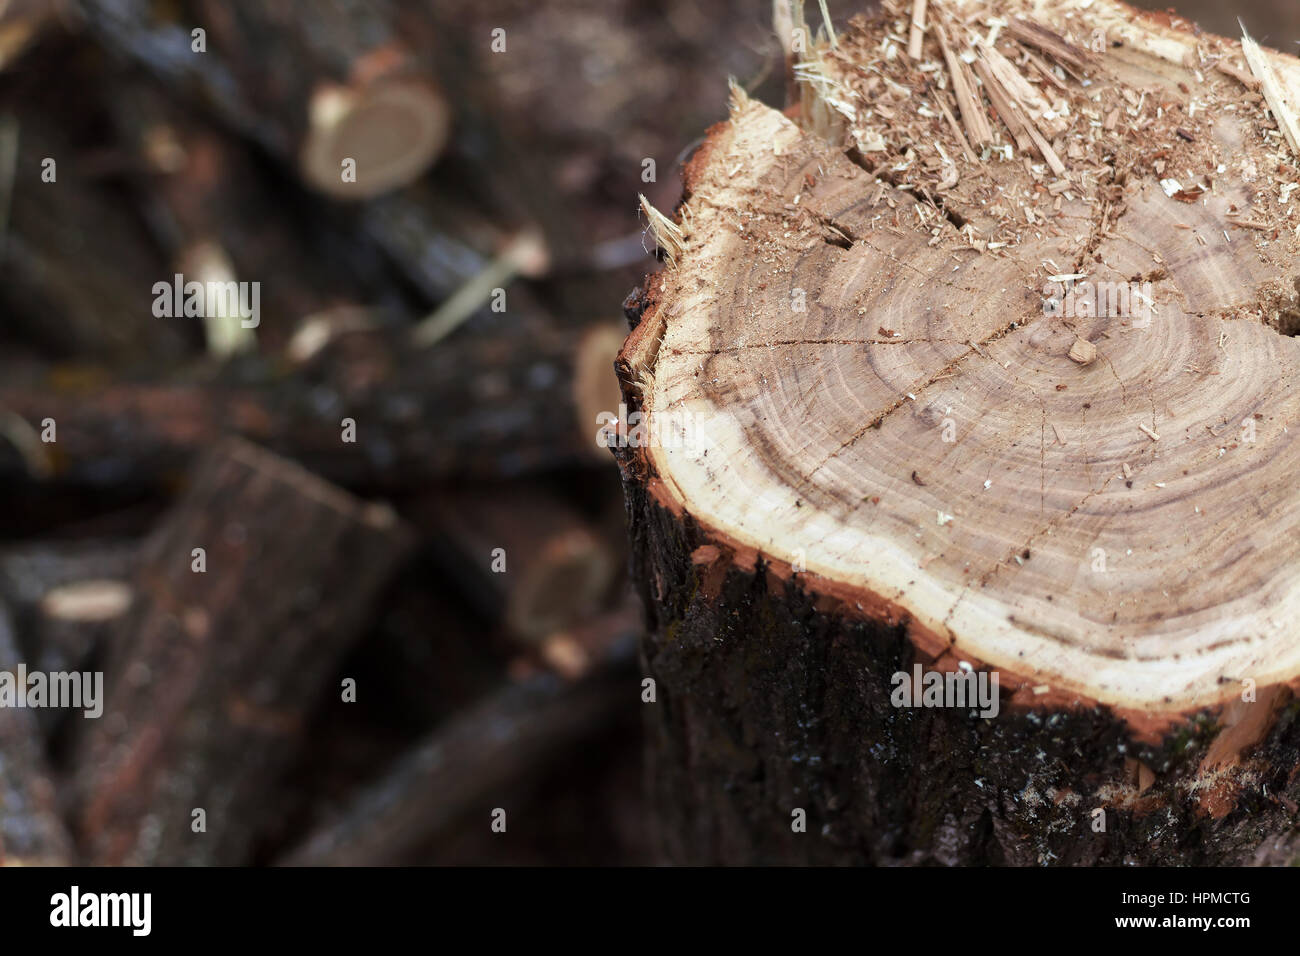 Details of a cut tree, cutting and storing firewood. - Stock Image